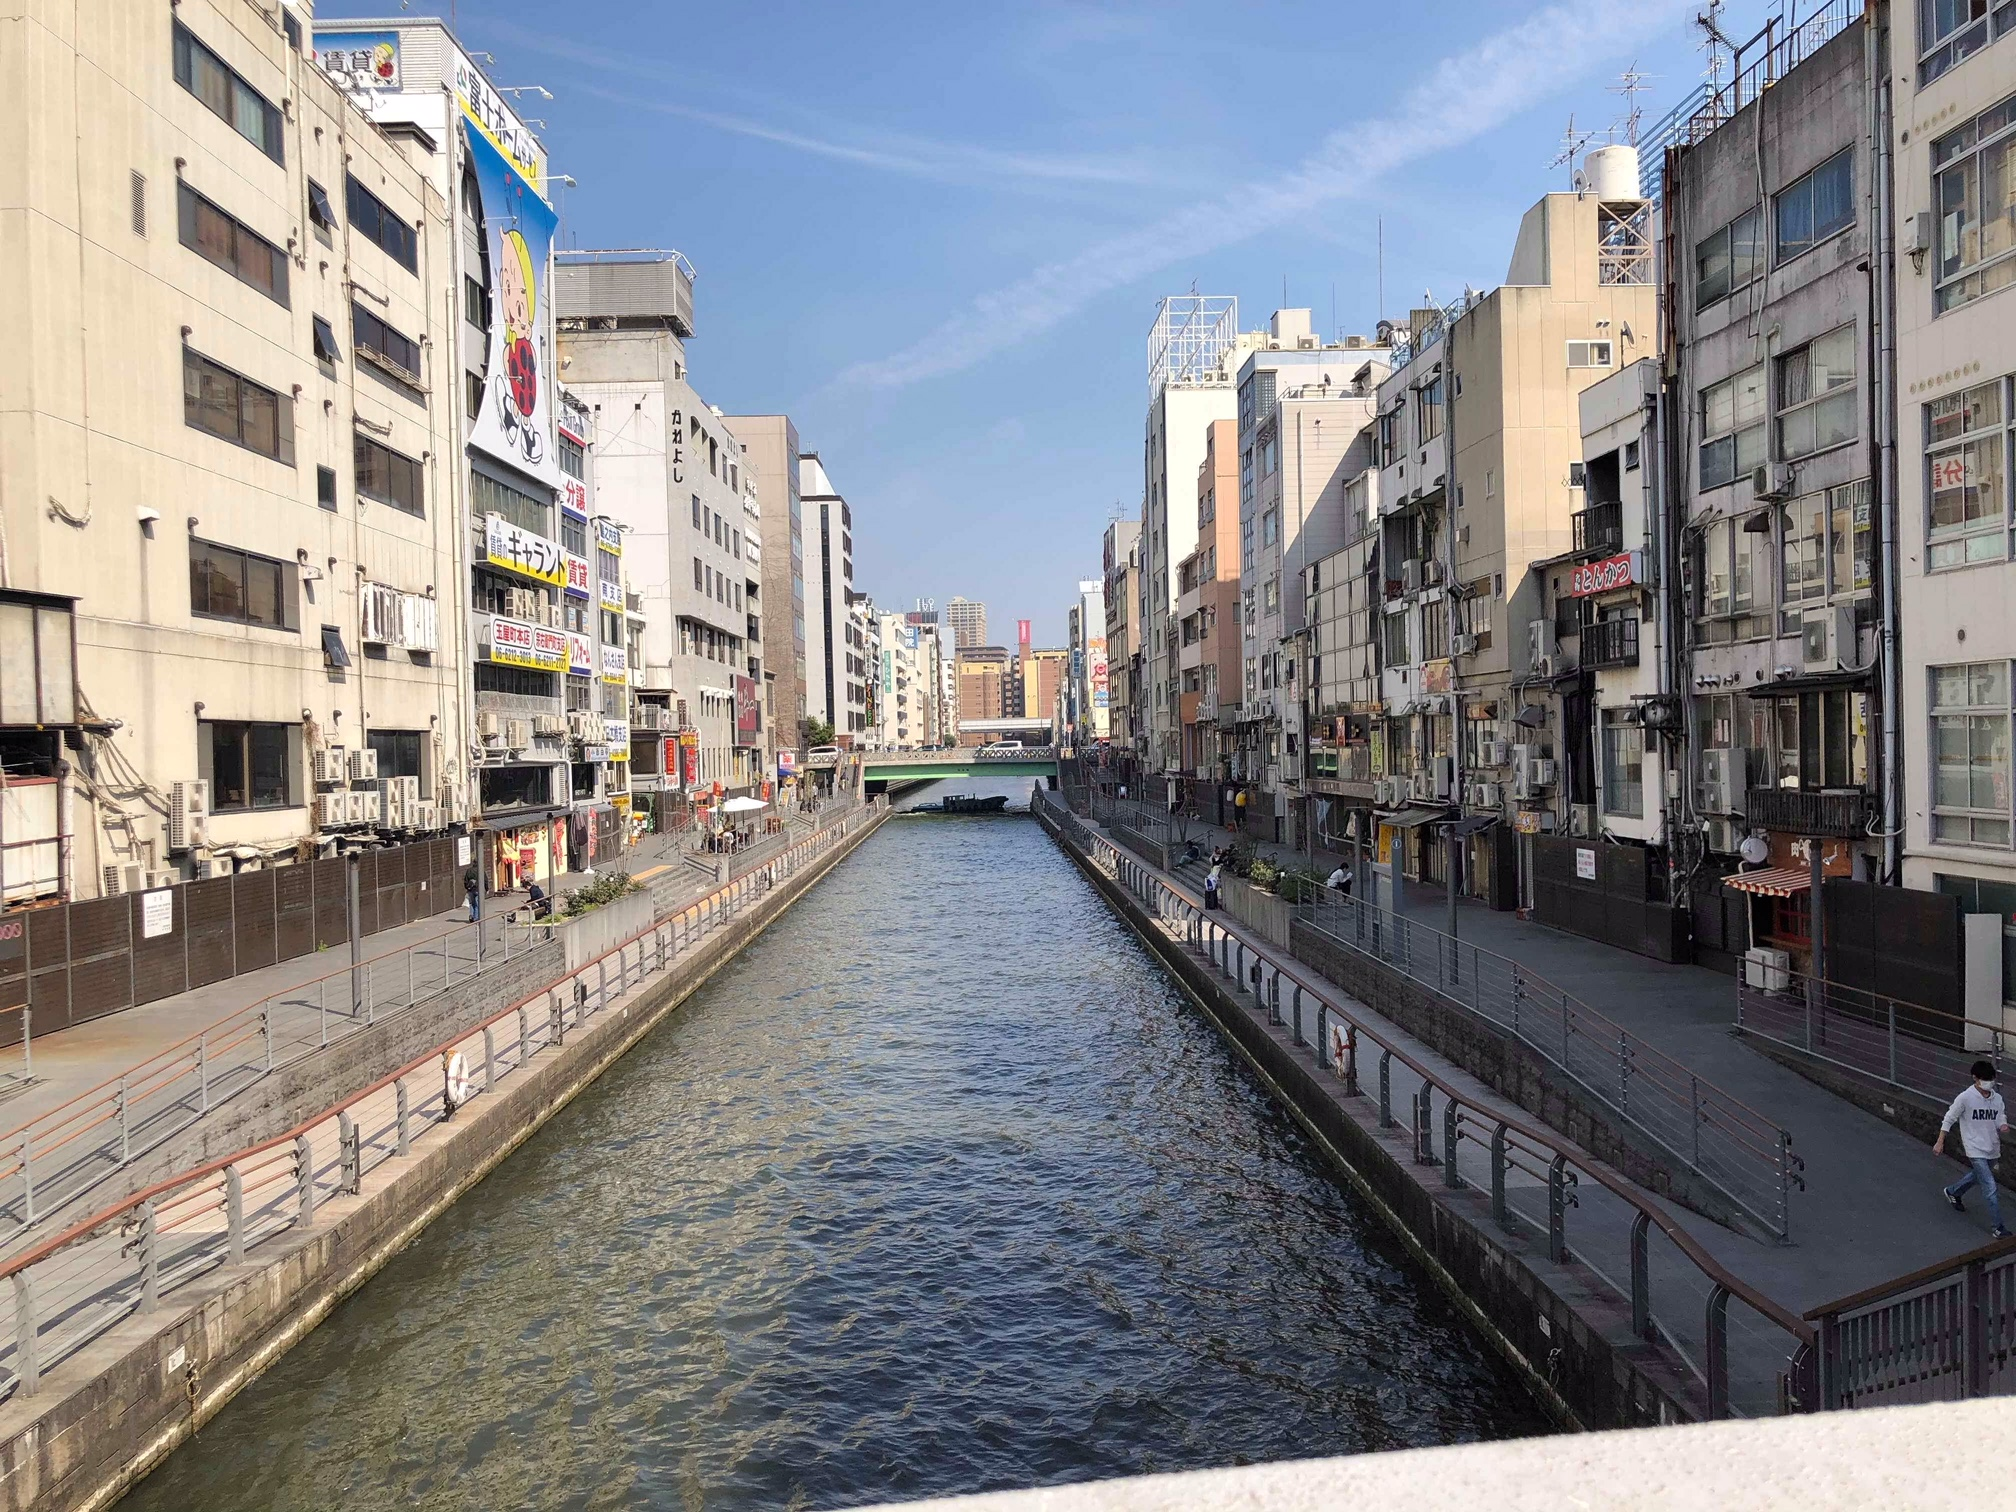 The Dotonbori area, abandoned in the day, comes to life in the evening.